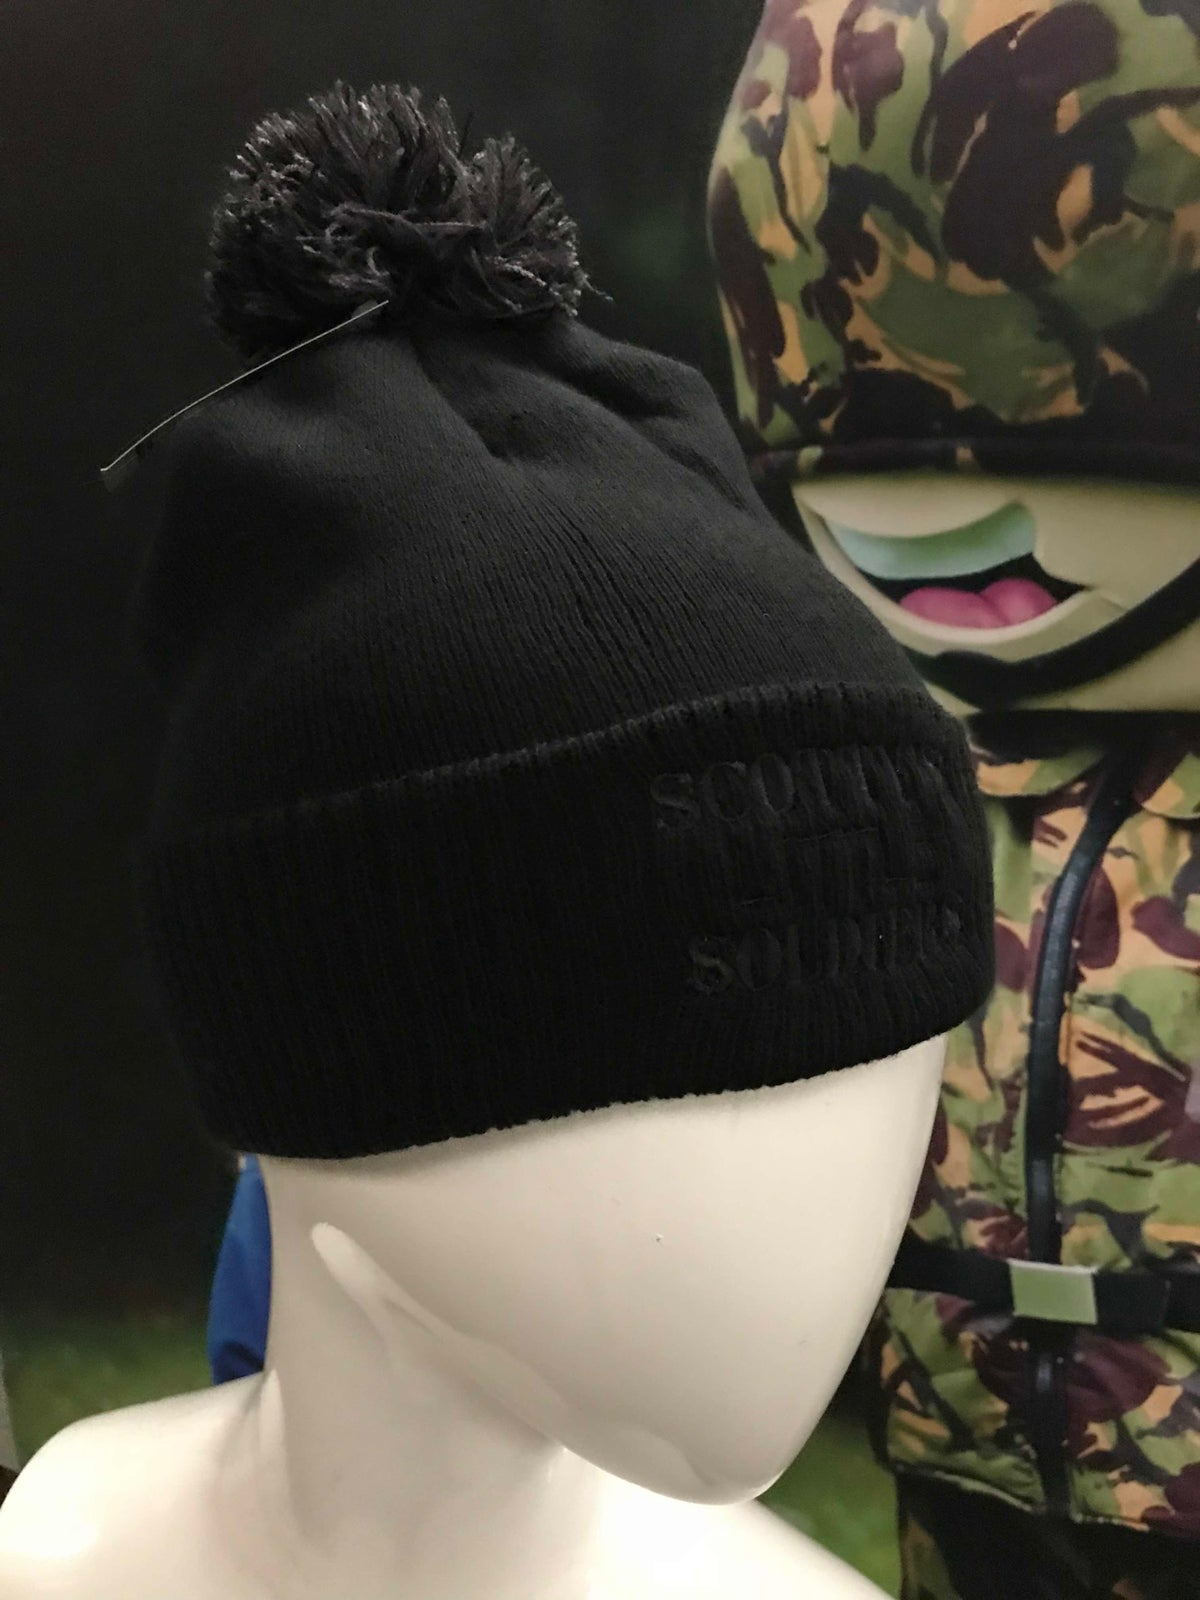 Image of Scotty's Bobble Hat